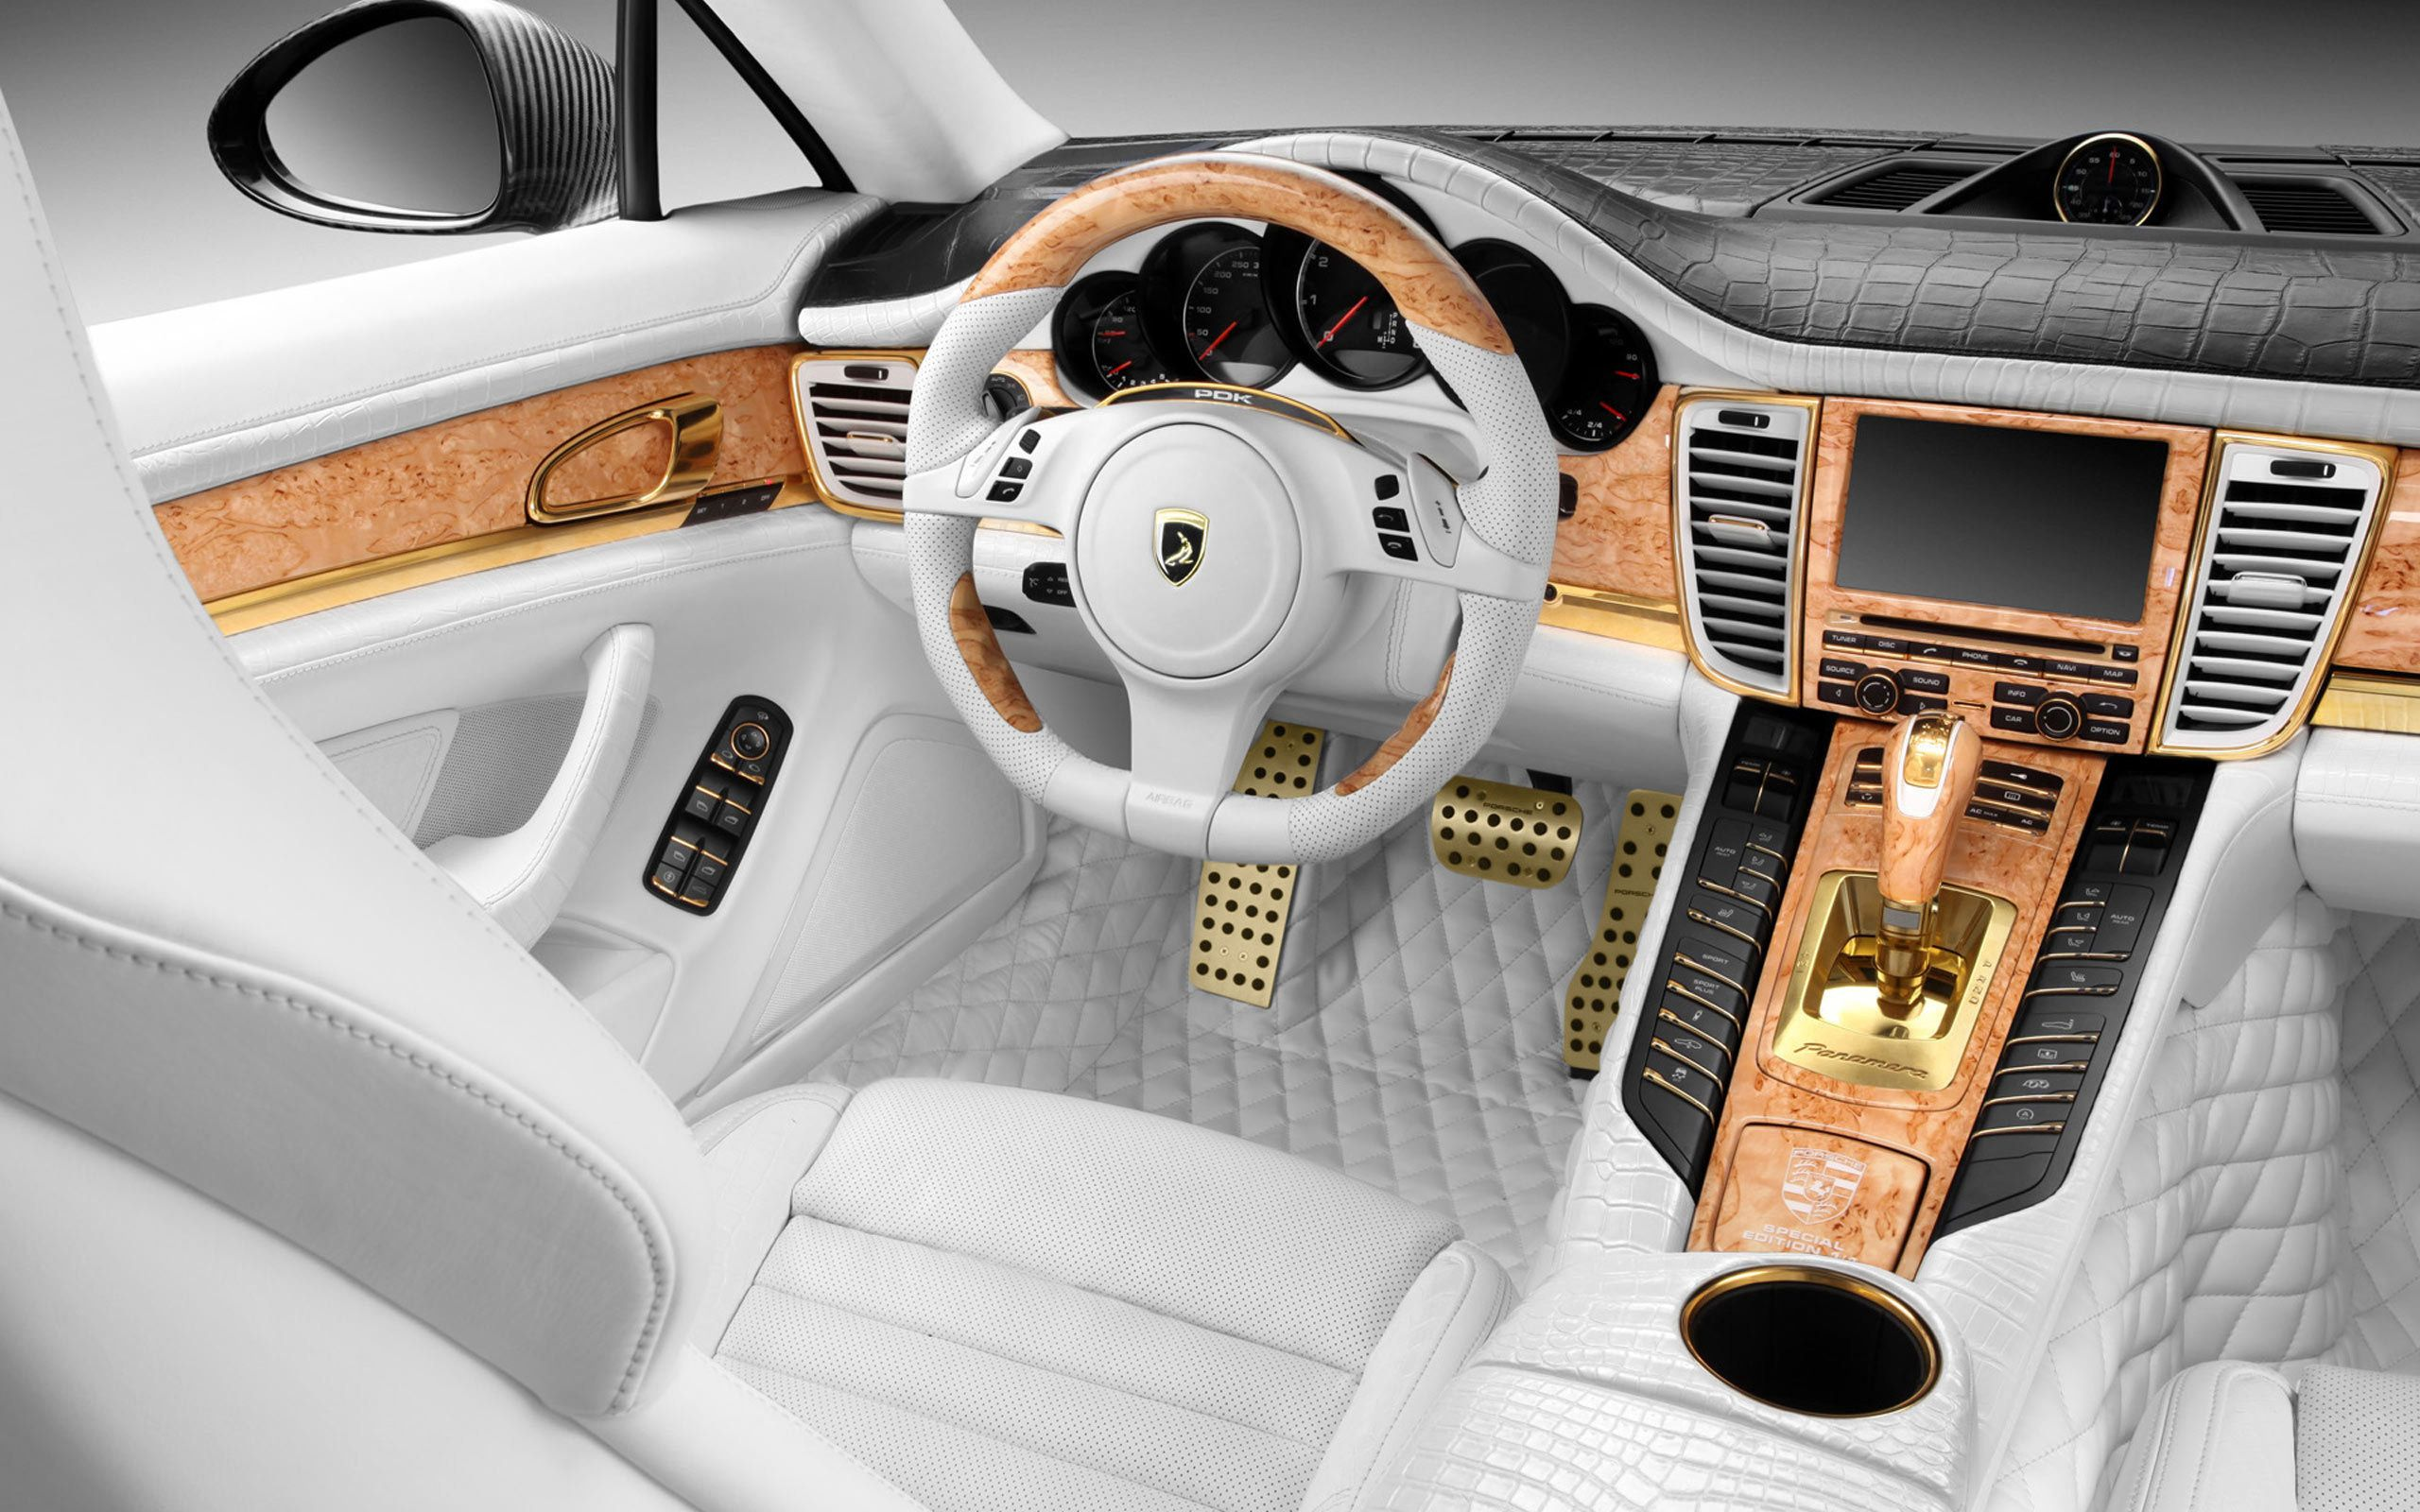 Luxury Car Interior Wallpaper 4775 2560x1600 - uMad.com